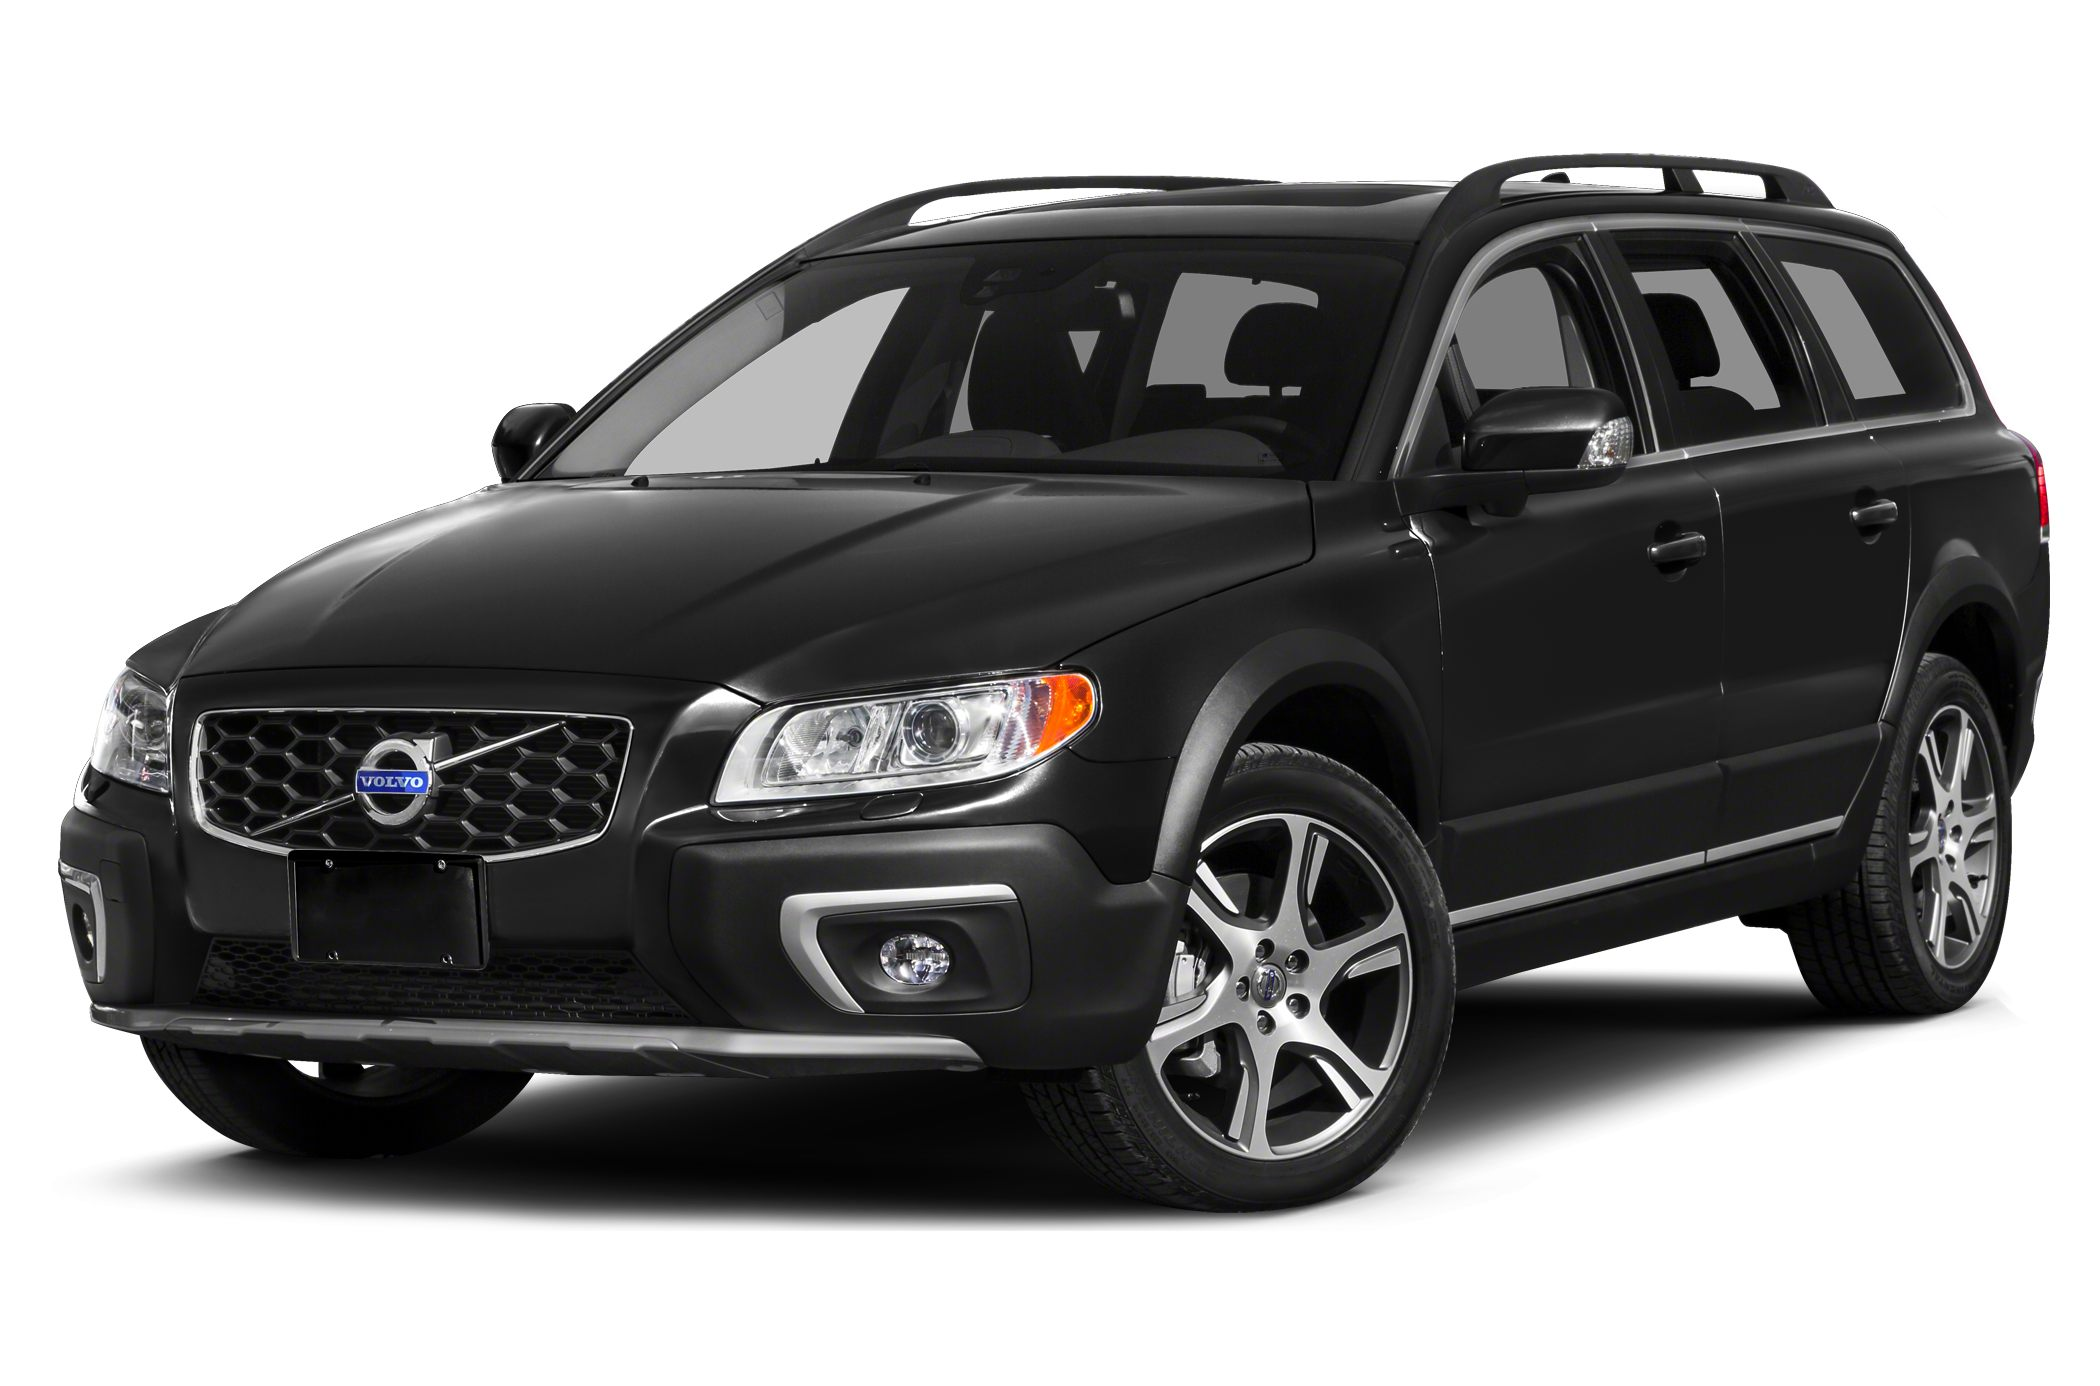 Volvo Xc70 News Photos And Buying Information Autoblog